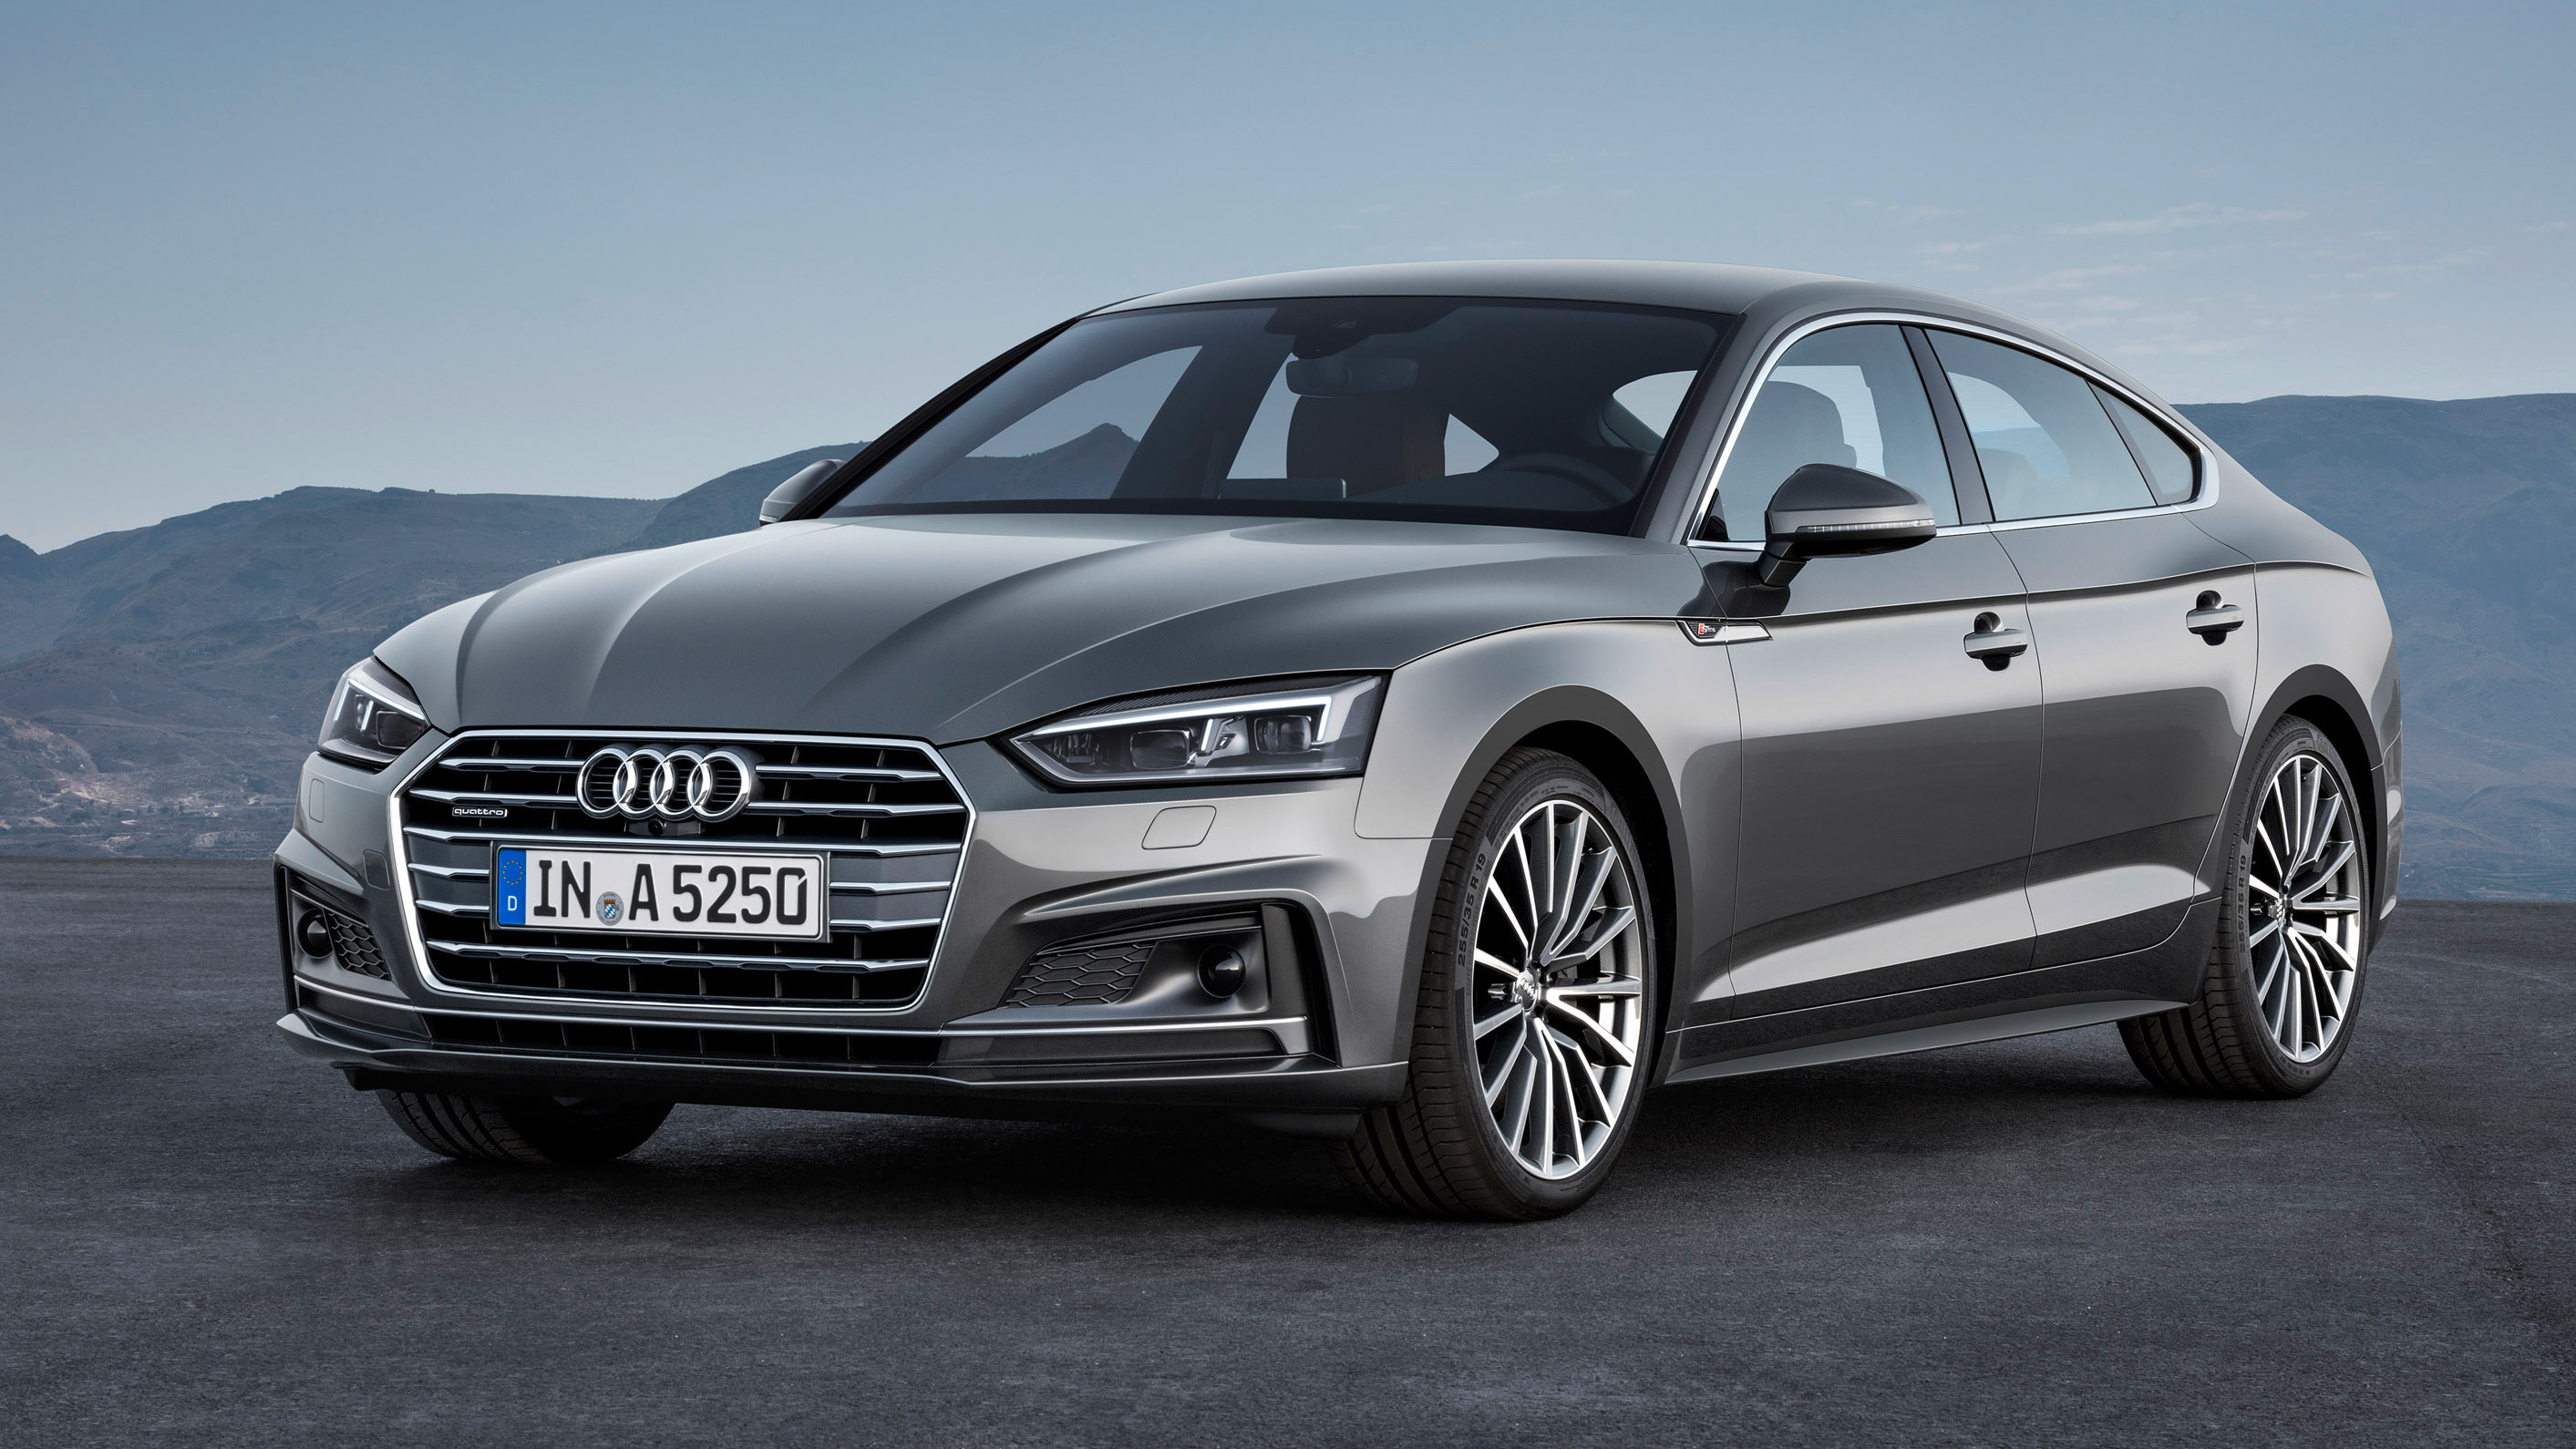 2018 Audi A5 Sportback Wallpaper Hd Car Wallpapers Id 7179